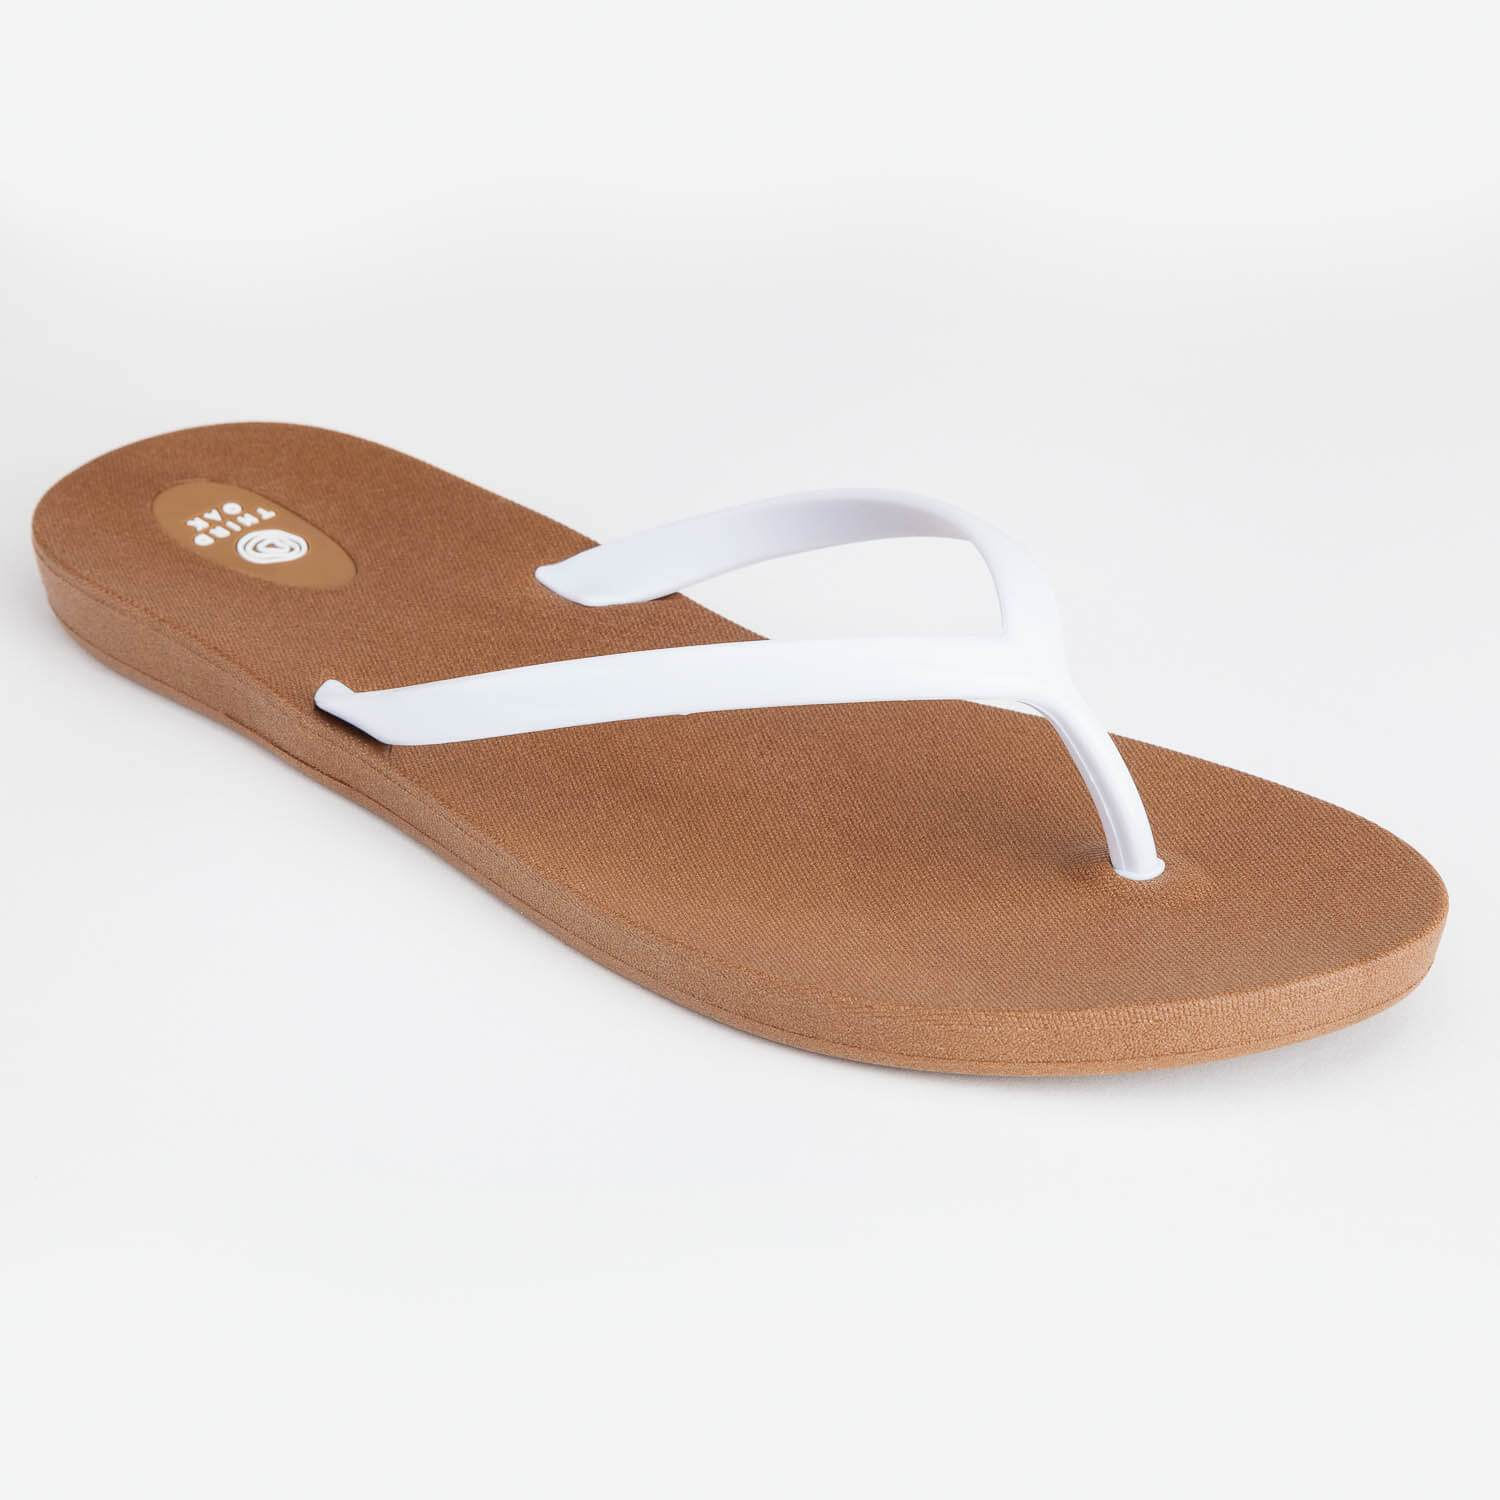 93da417b2222 Third Oak Scout Flip Flop - Toffee White – Eco and Earth